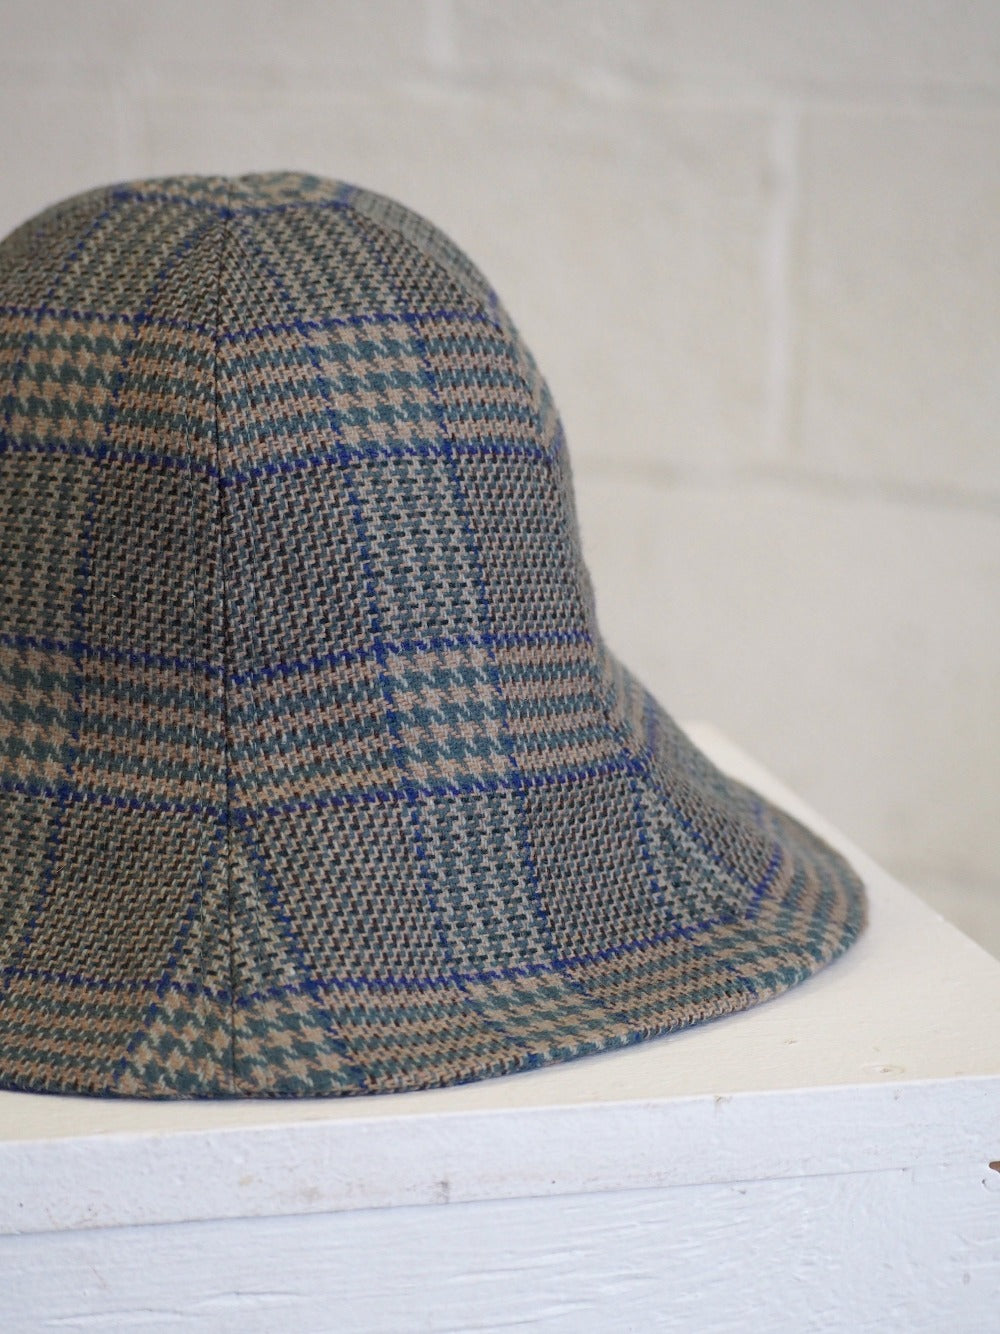 cloche chapeau à carreaux unisexe non-genré london veri montreal clothing